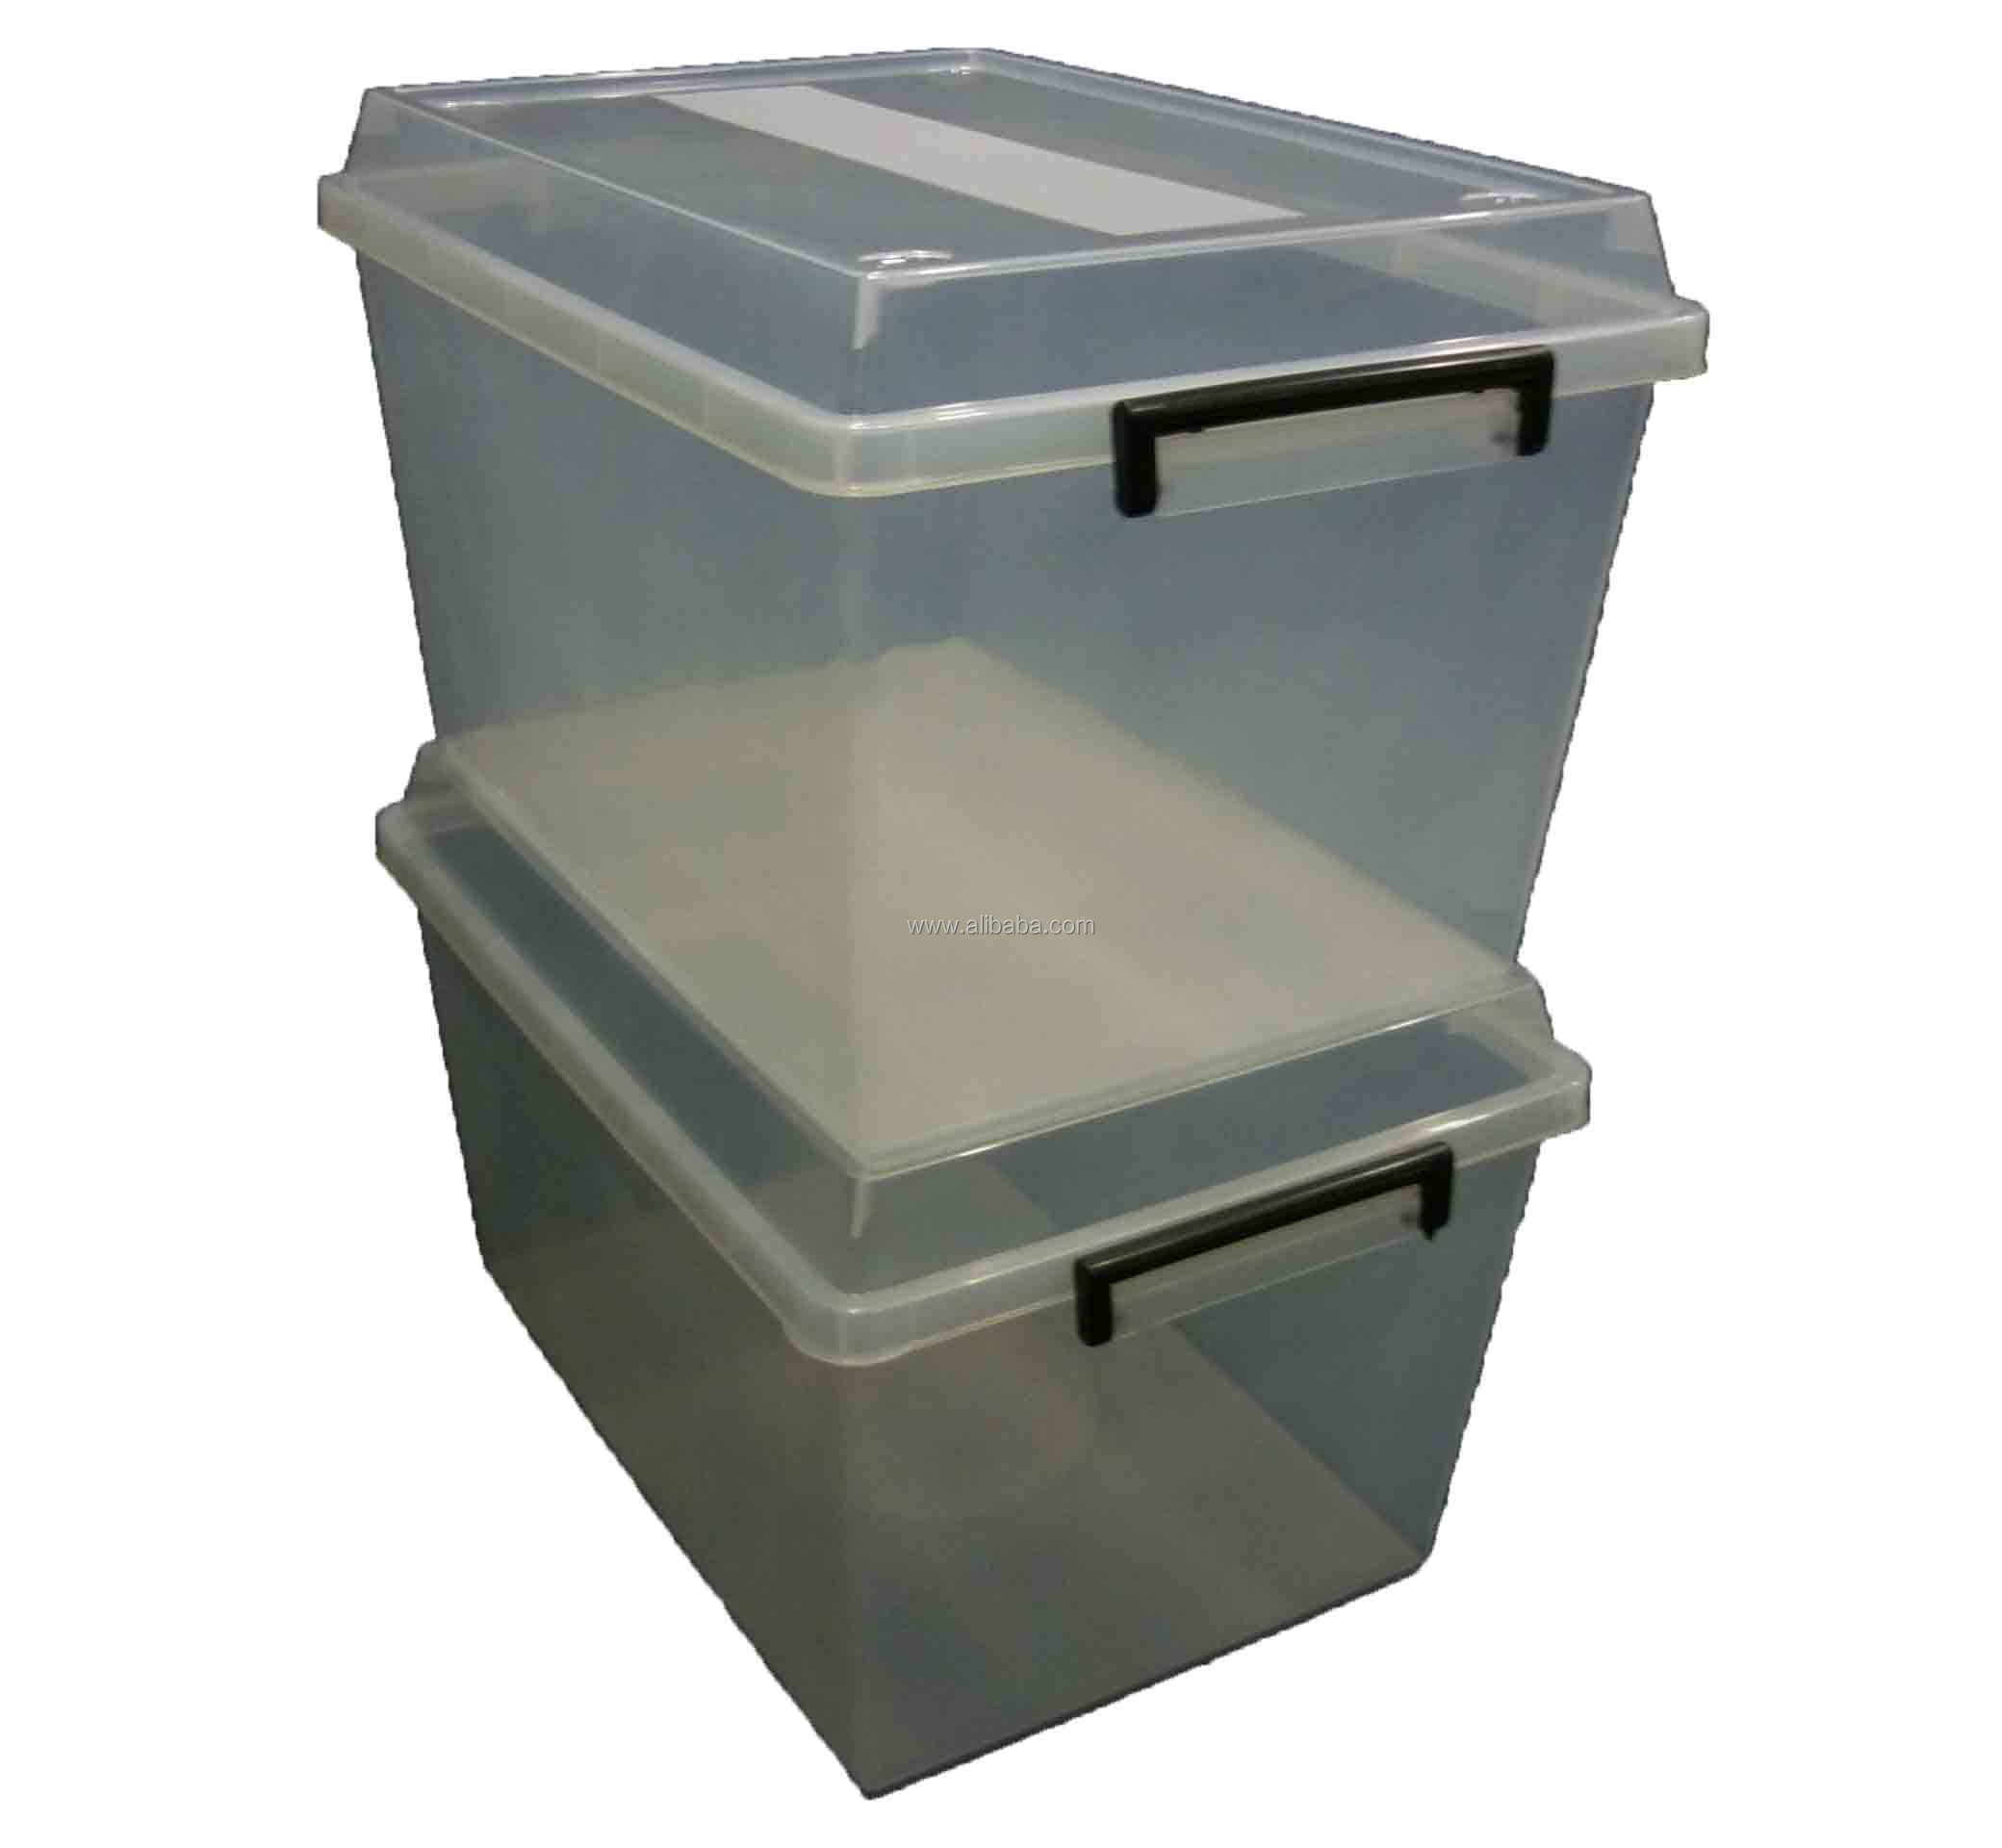 containers container square the tub equipment reviews sil best cook quart dry storage illustrated s cambro